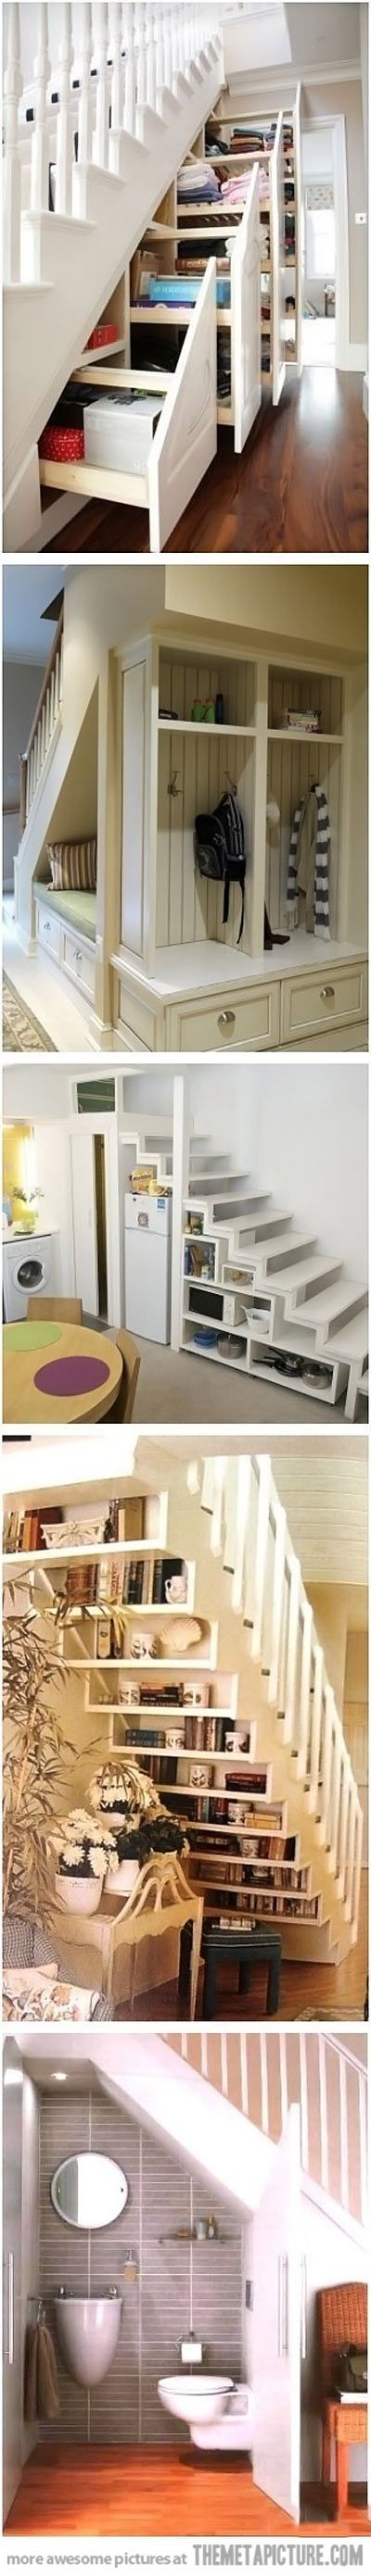 funny-stairs-case-armoir